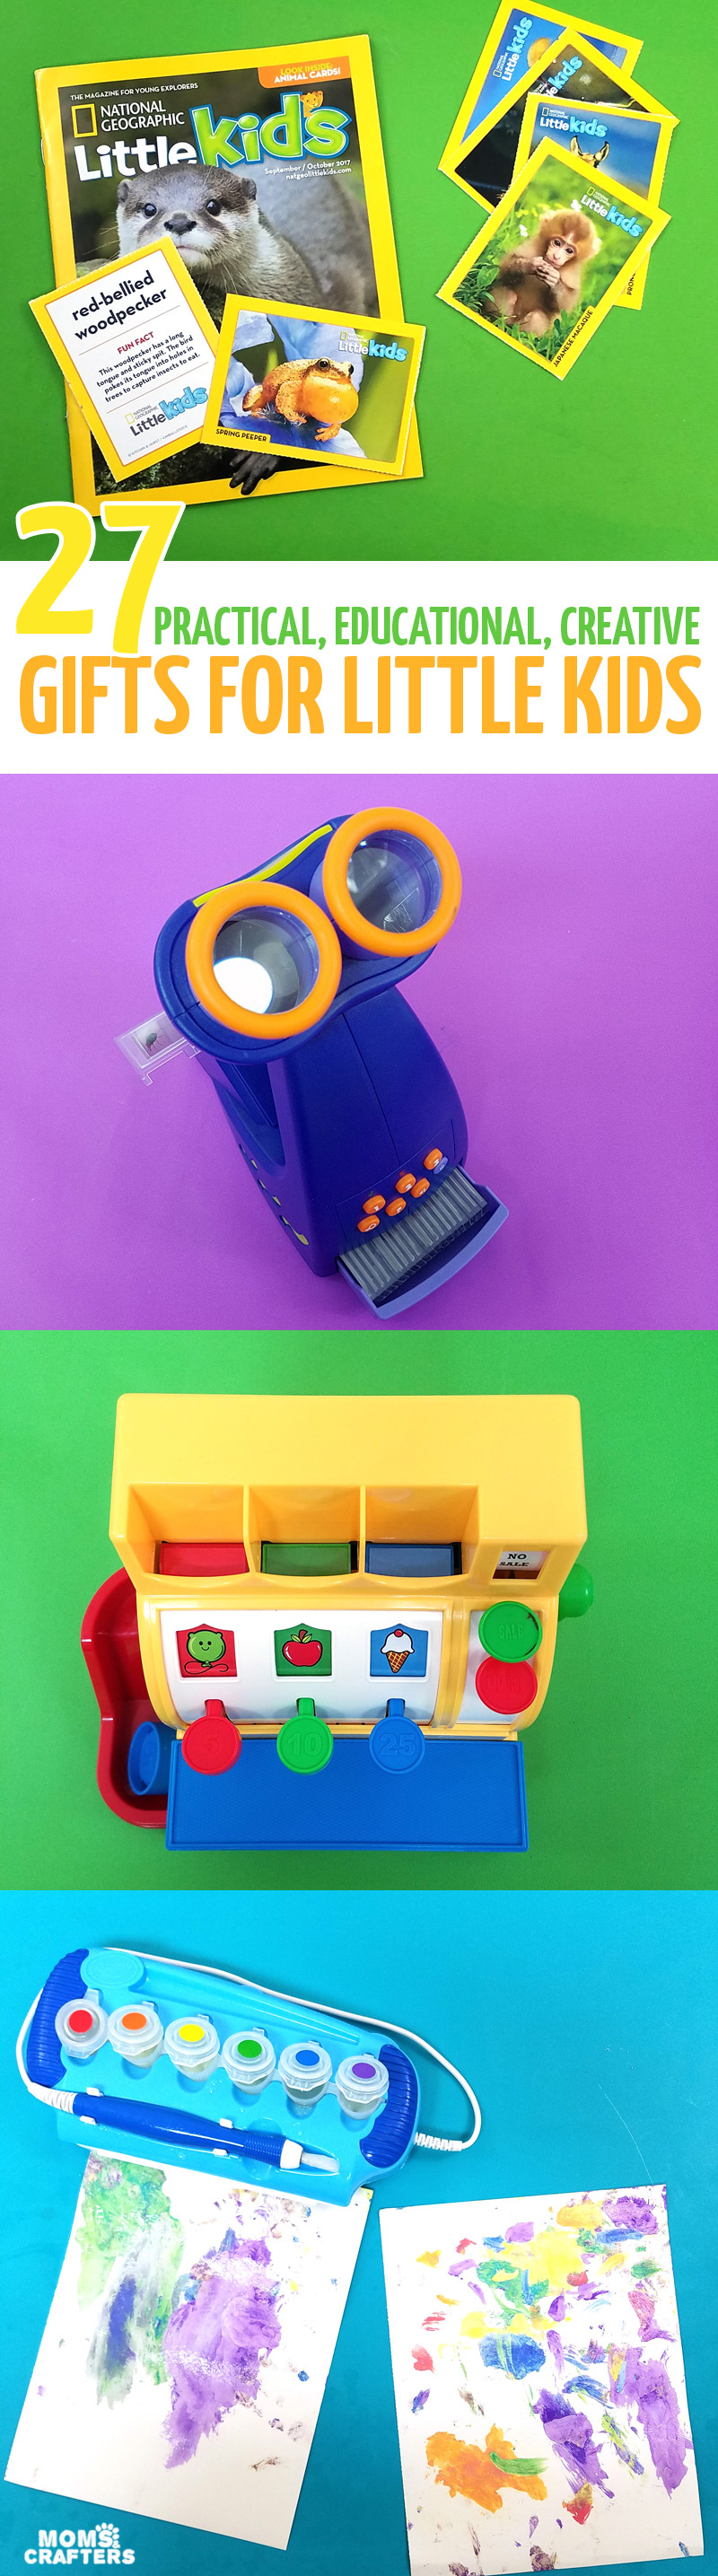 Gifts for Preschoolers 27 Ideas They ll Love Moms and Crafters